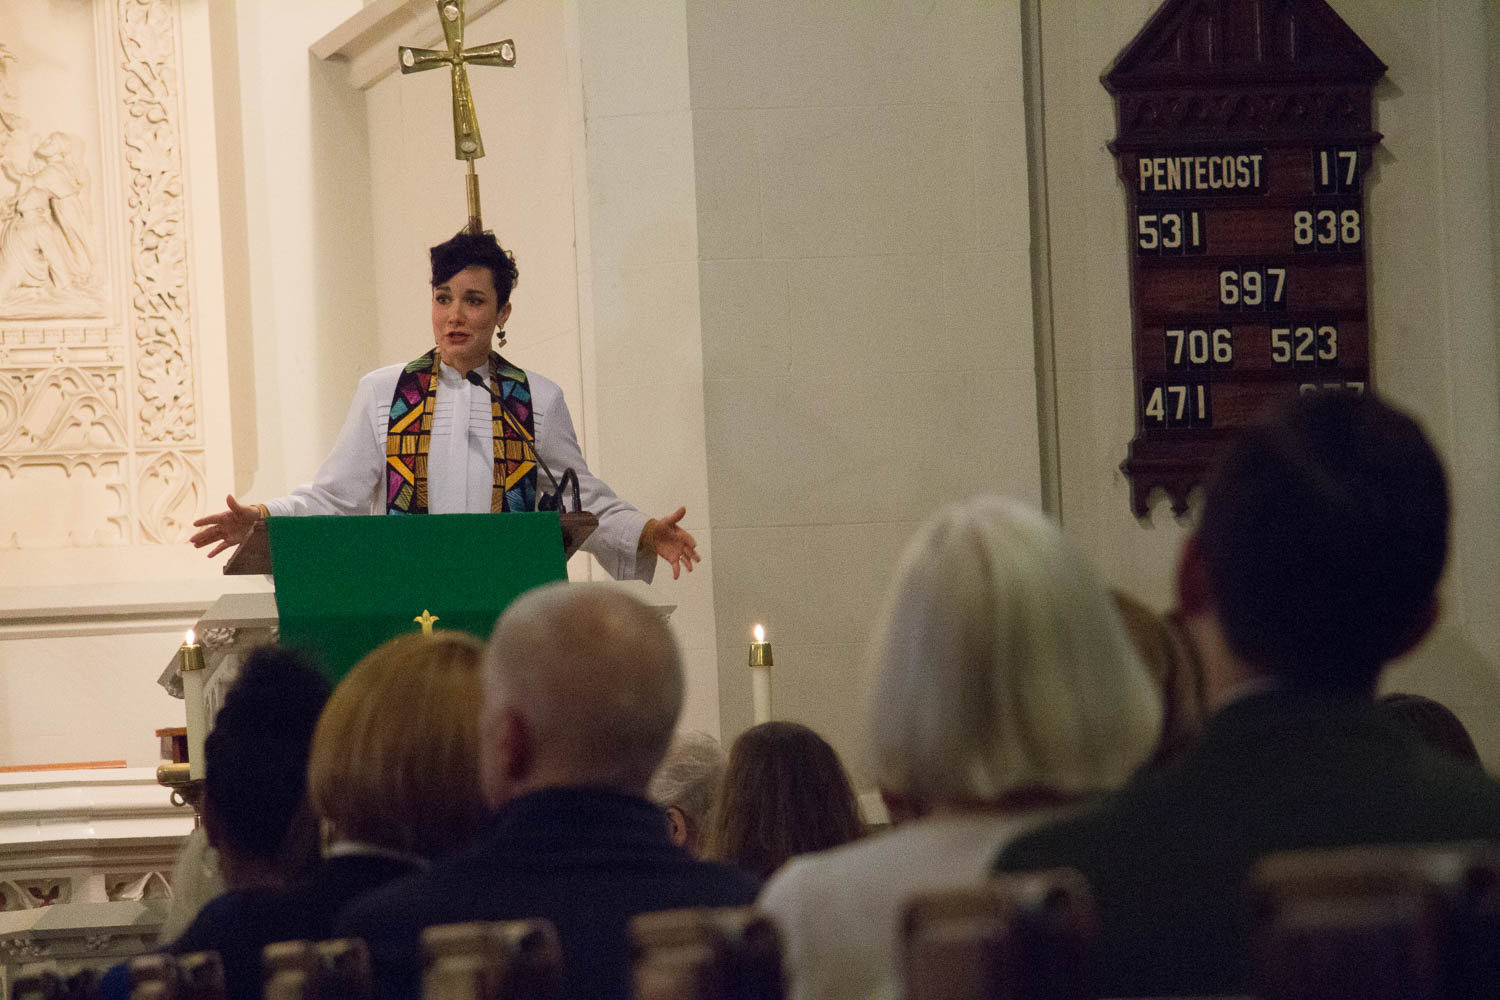 Pastor Stephanie Kershner, a friend of Pastor Danielle's and former seminary intern here at Advent, preached at the service. You can listen to her sermon below.